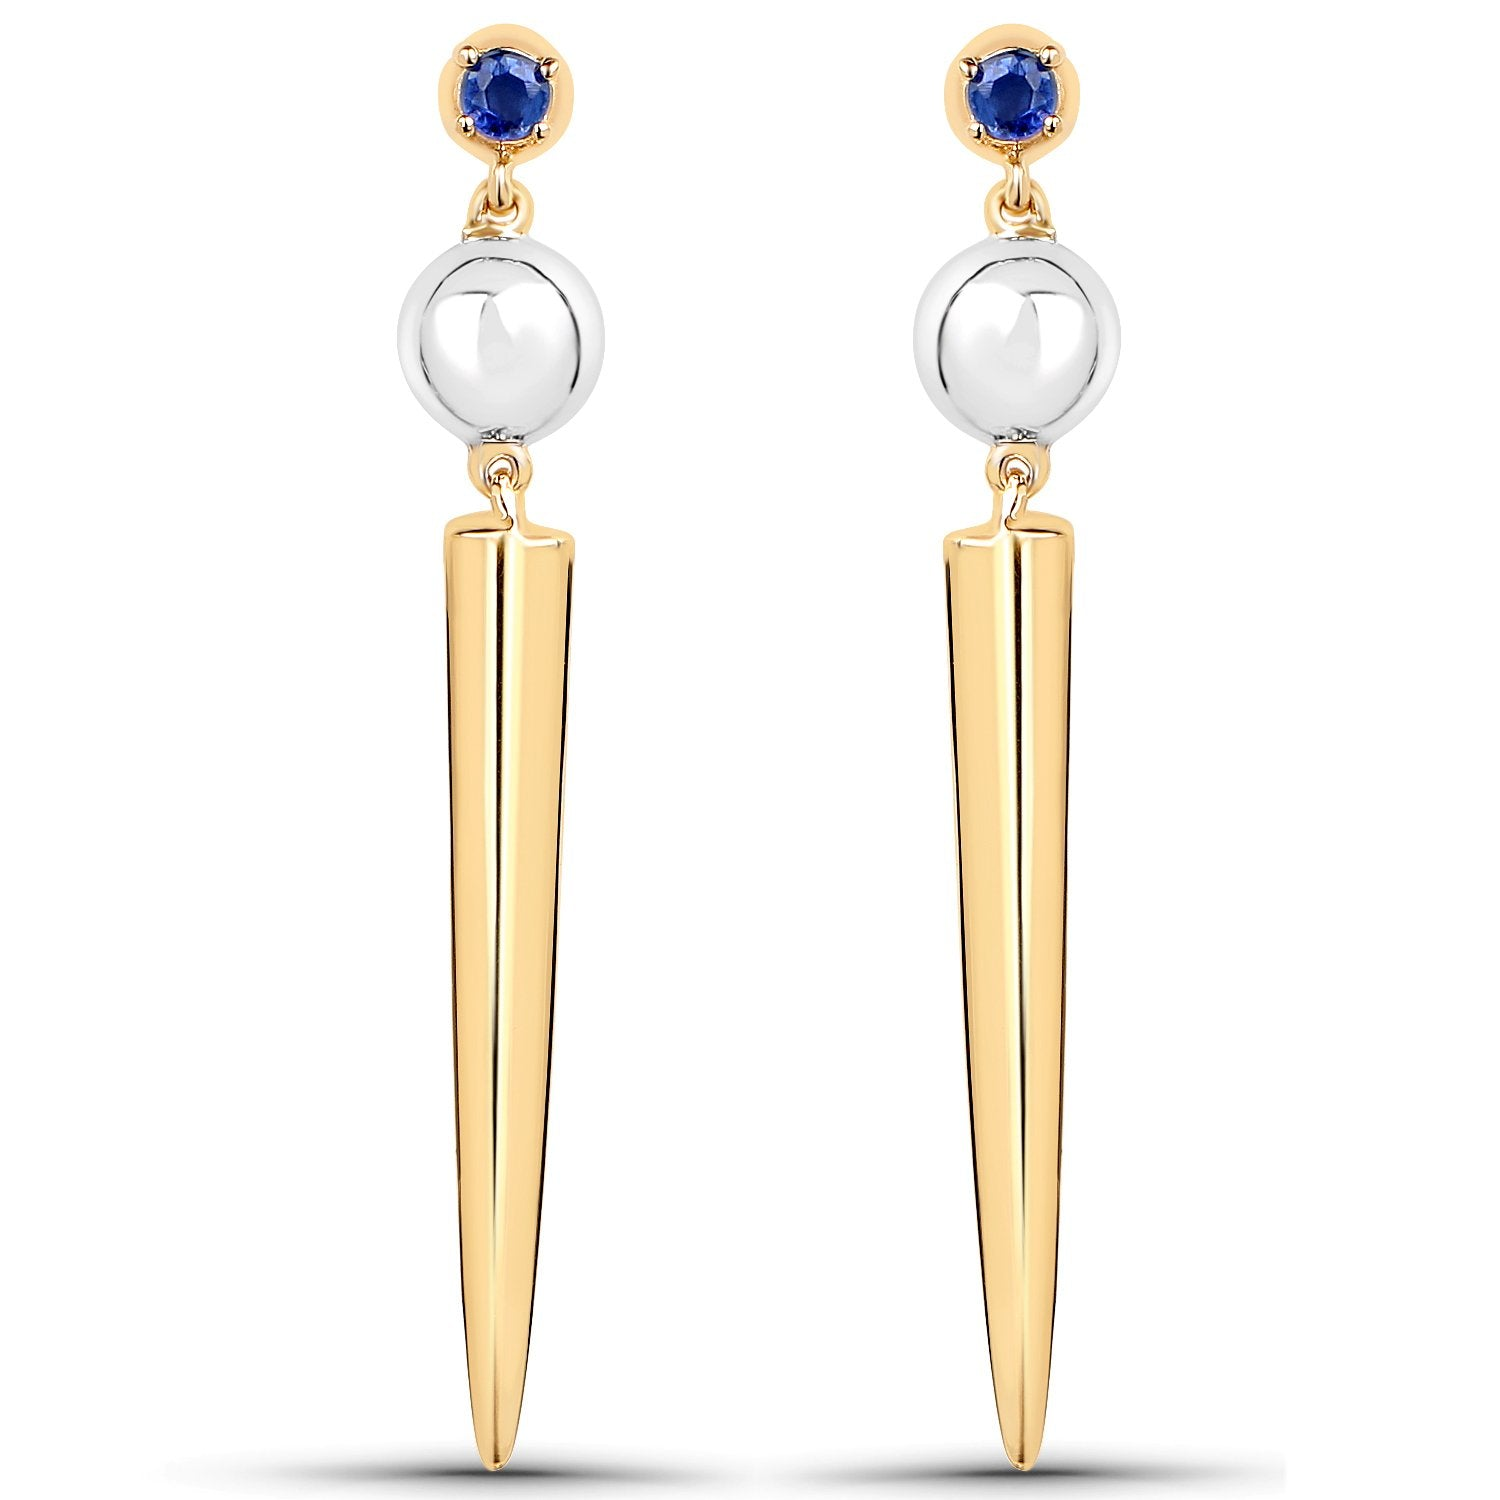 LoveHuang 0.13 Carats Genuine Kyanite Bullet Earrings Solid .925 Sterling Silver With 18KT Yellow Gold Plating